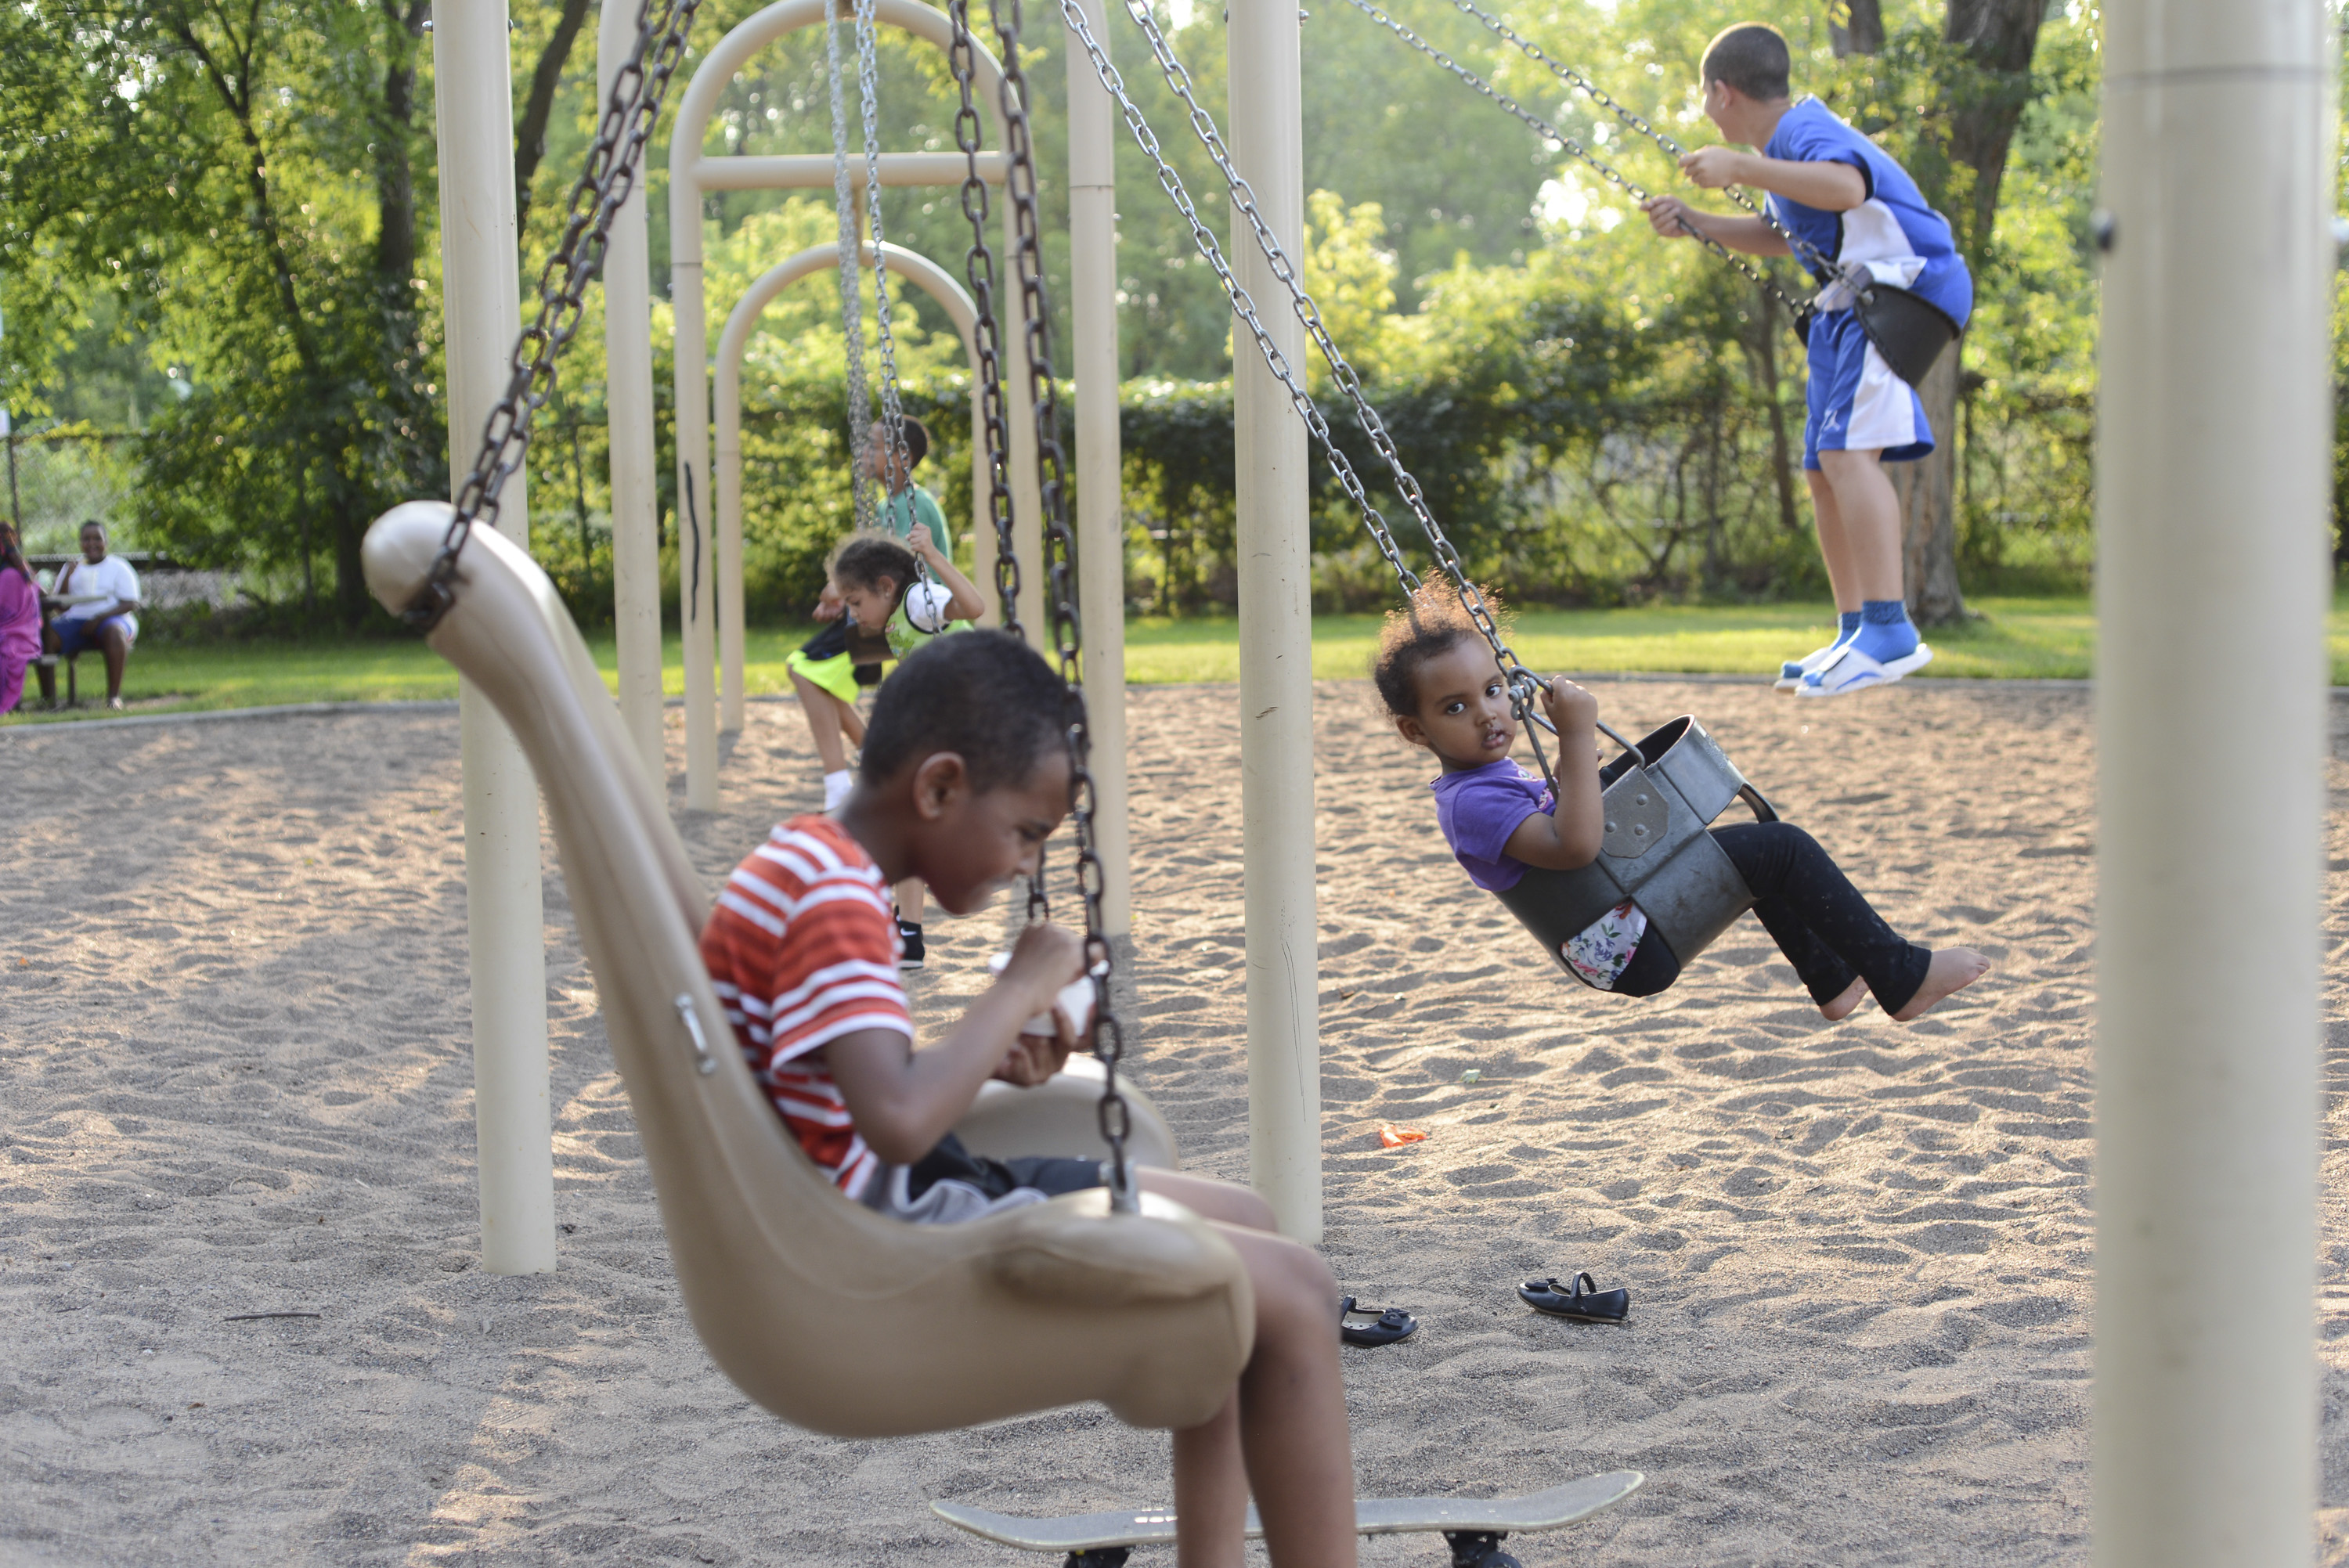 The Minneapolis Park and Recreation Board says the city's 157 neighborhood parks face a $15 million annual shortfall in repairs and maintenance. Photo courtesy of the Minneapolis Park and Recreation Board